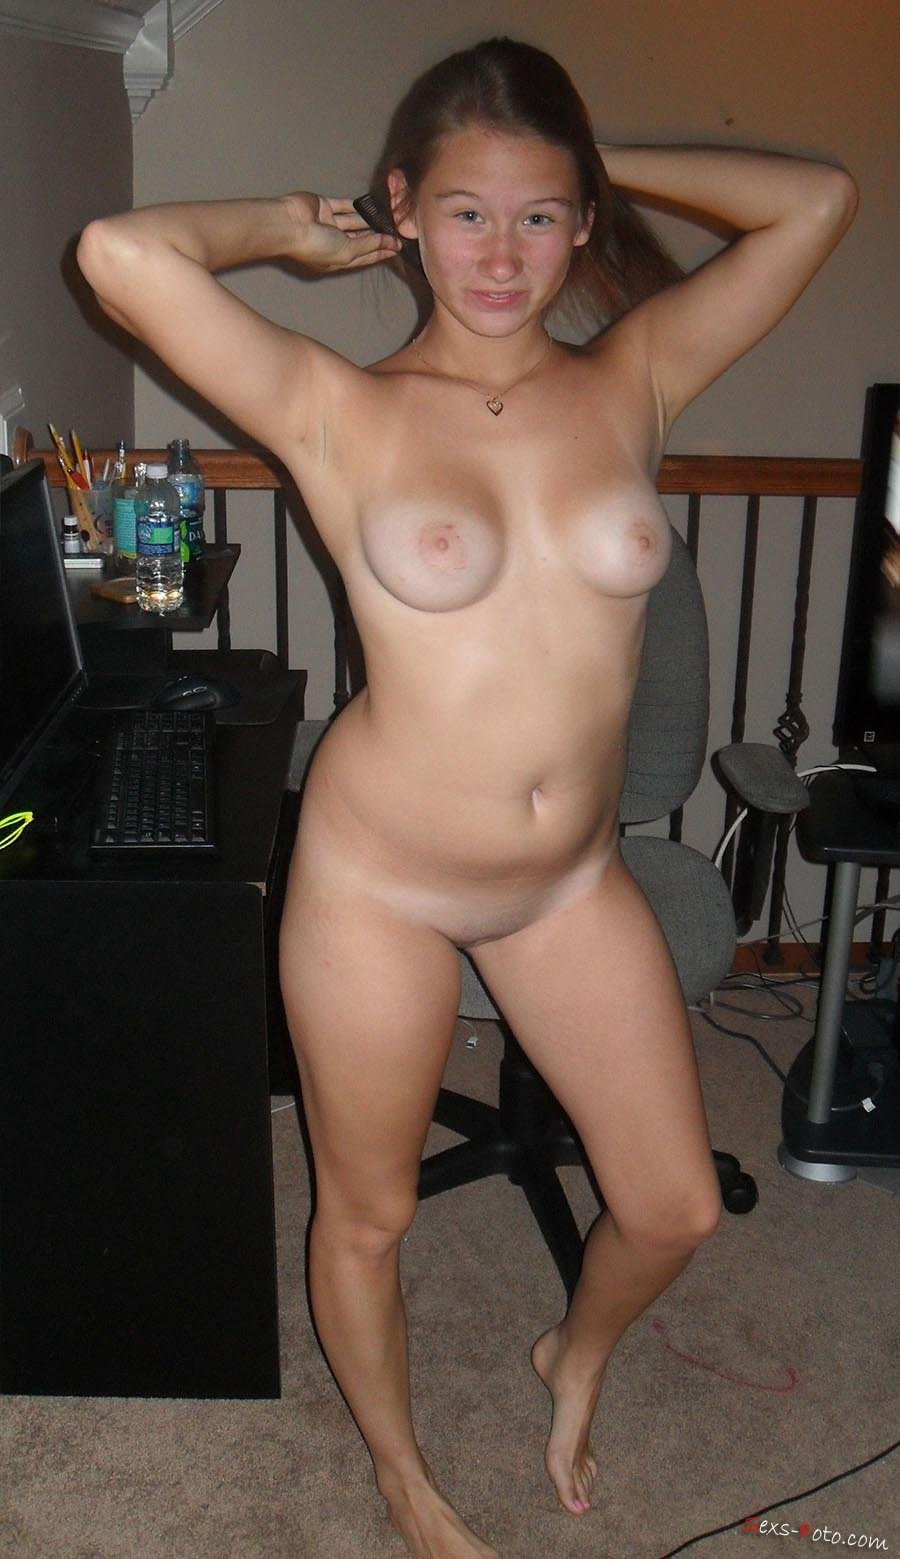 milking prostate with dildo – Amateur